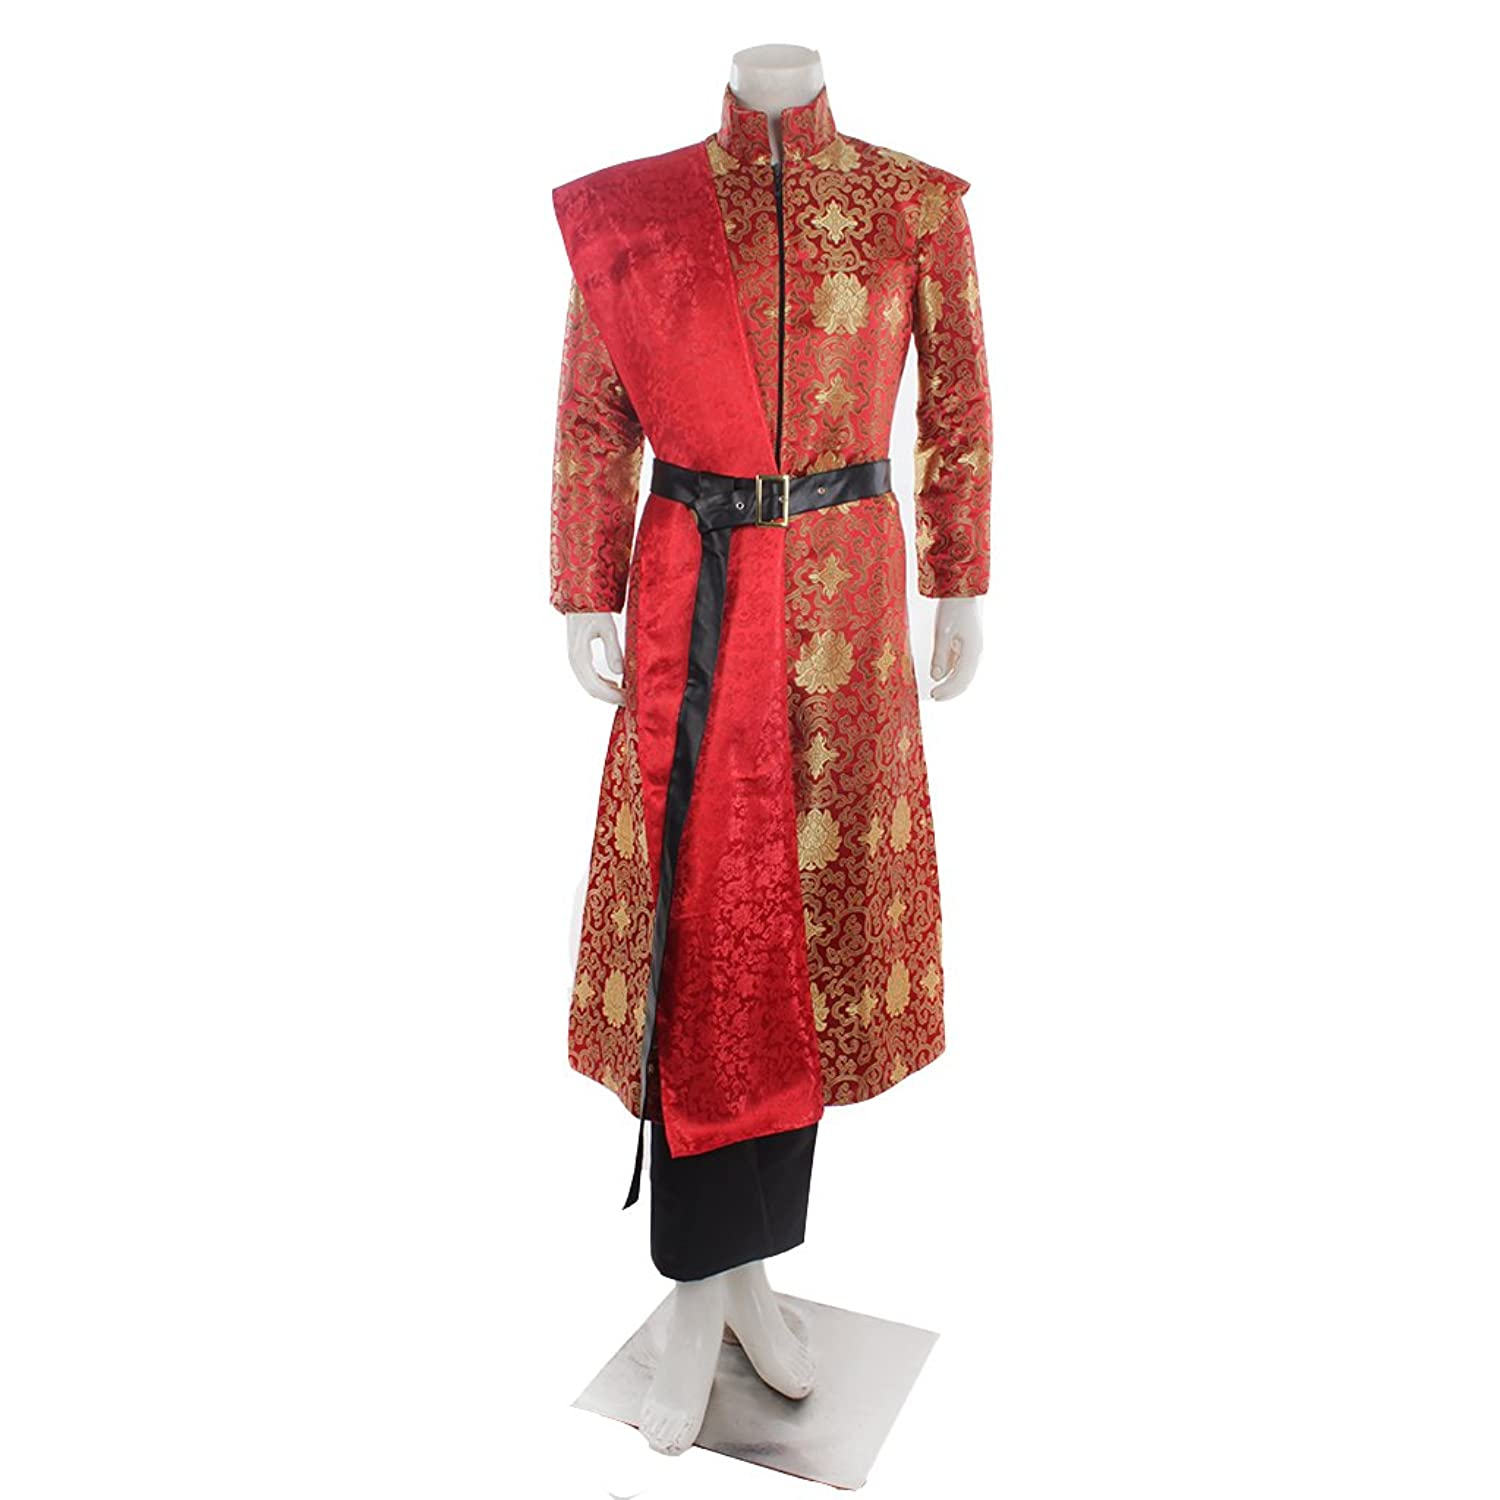 amazoncom cosplaydiy menu0027s costume outfit for game of thrones king joffery cosplay clothing